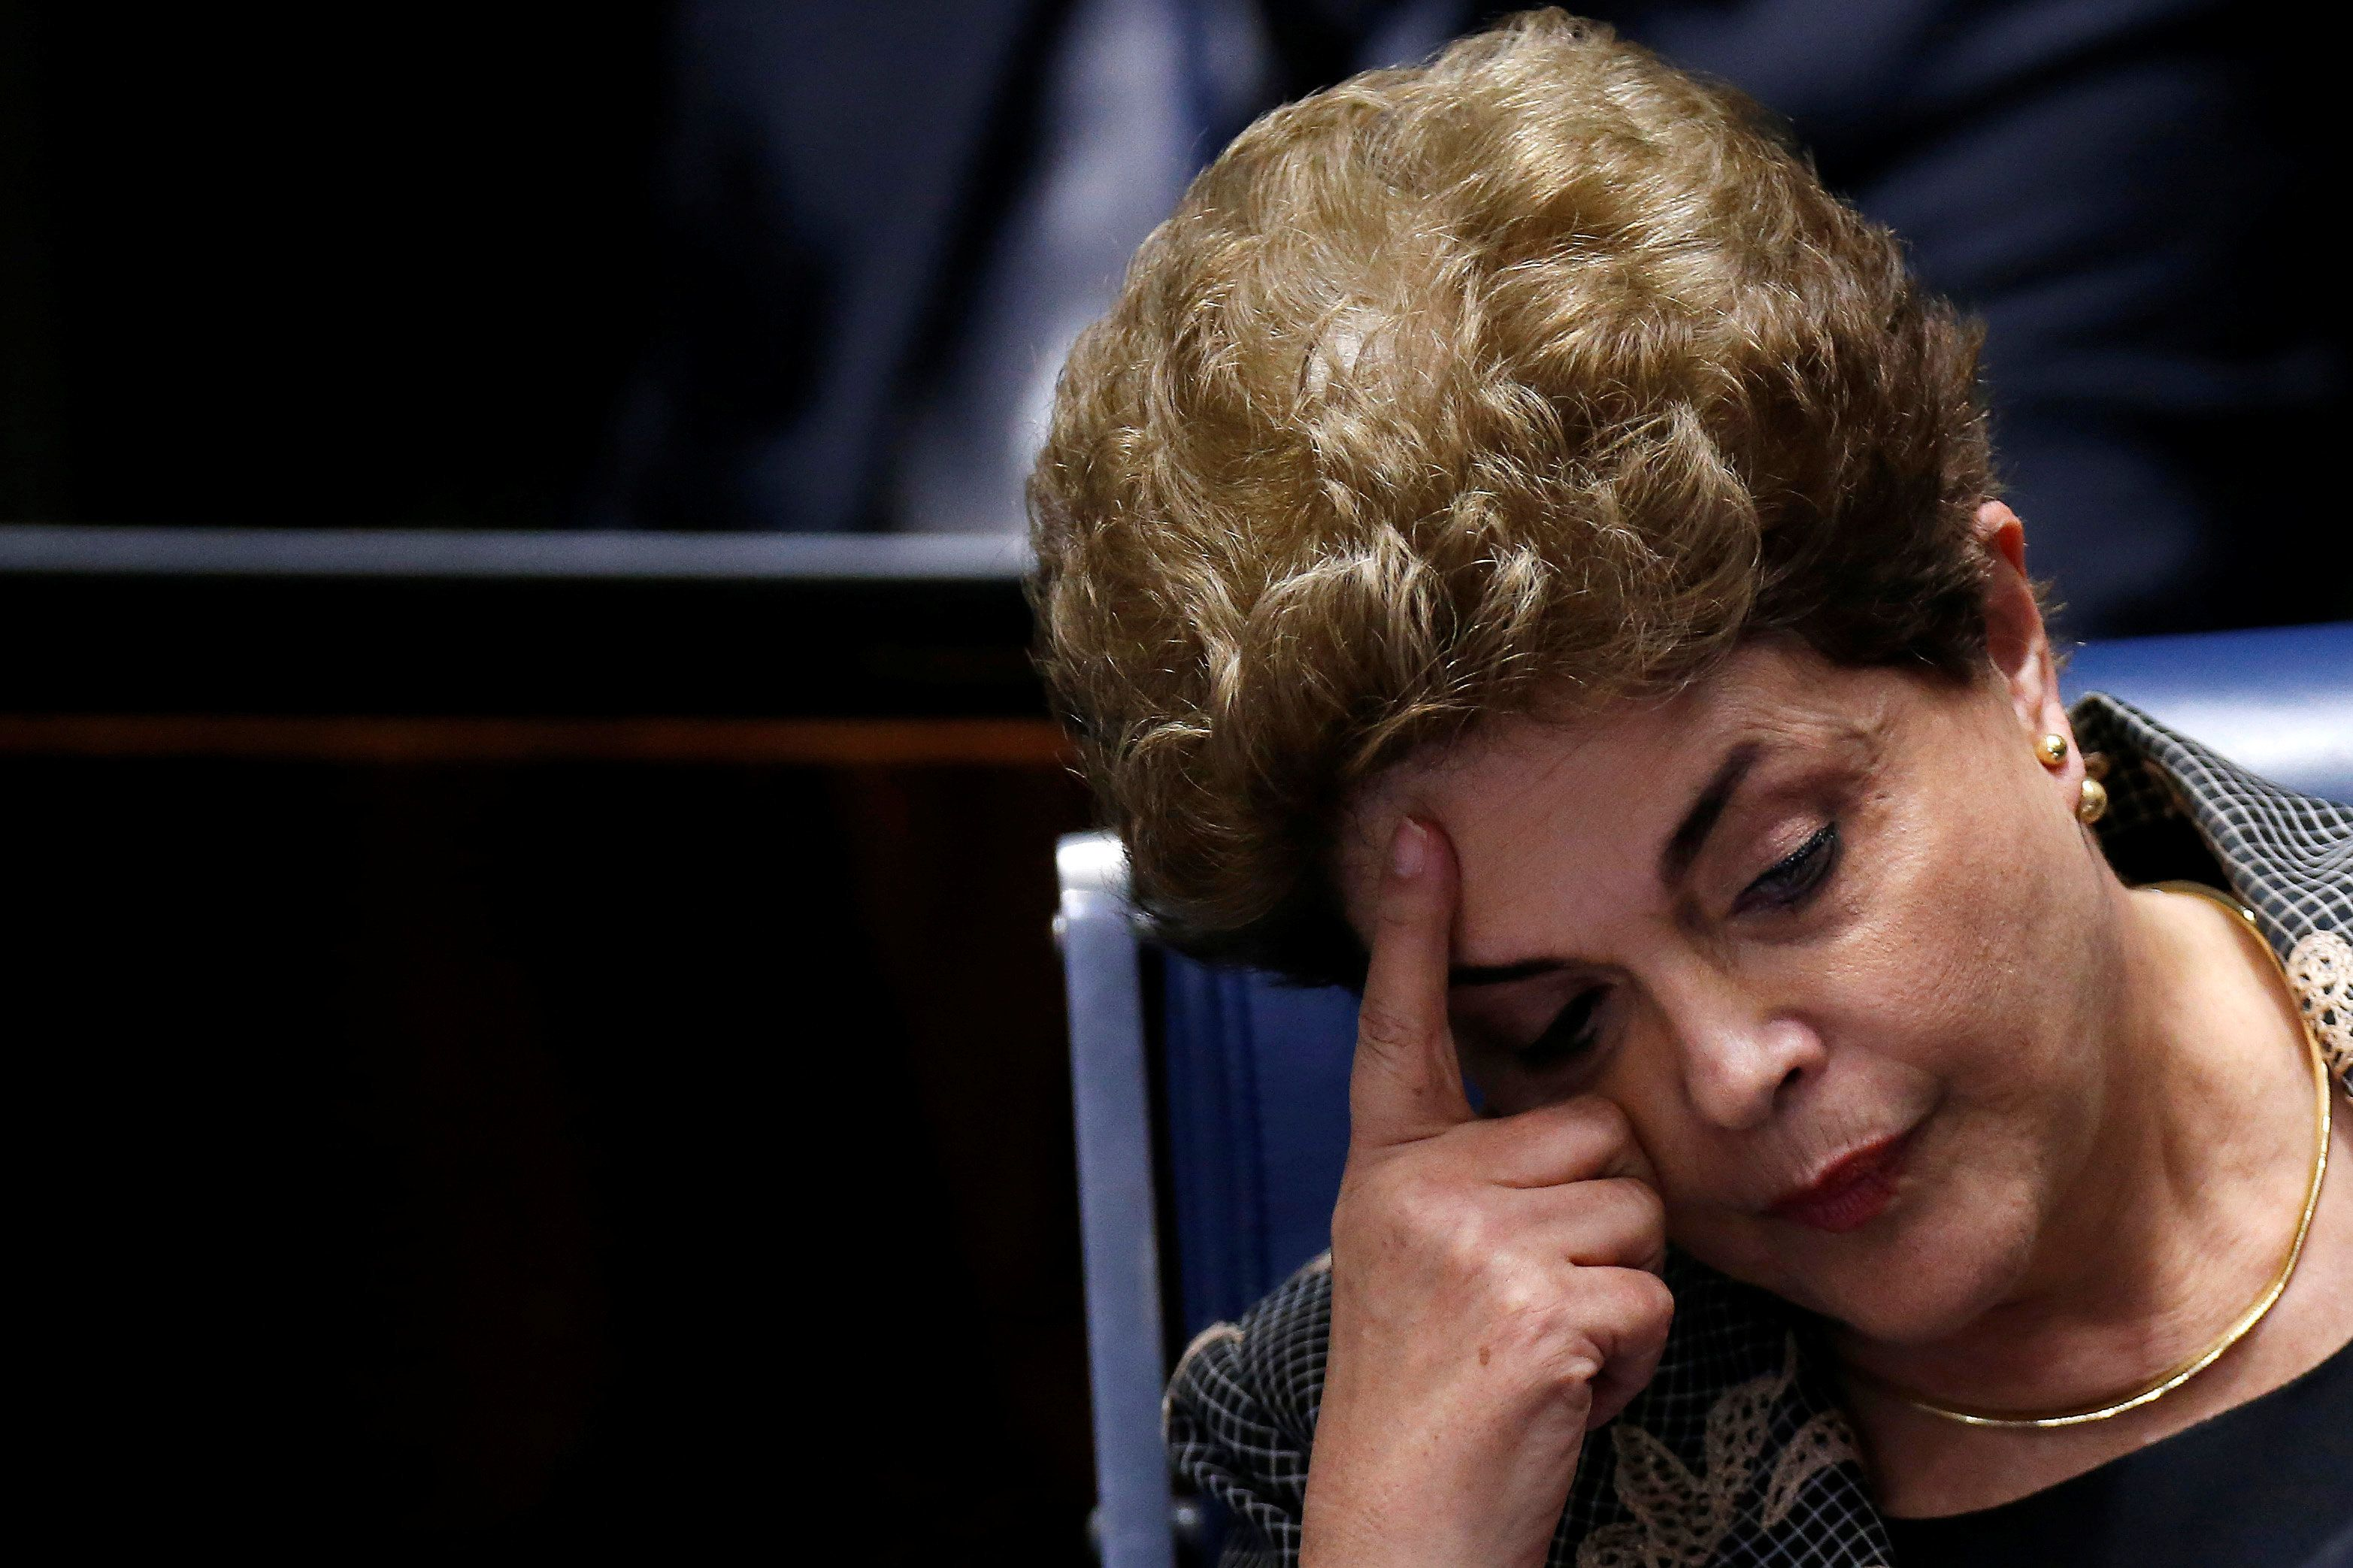 Brazil's suspended President Dilma Rousseff attends the final session of debate and voting on Rousseff's impeachment trial in